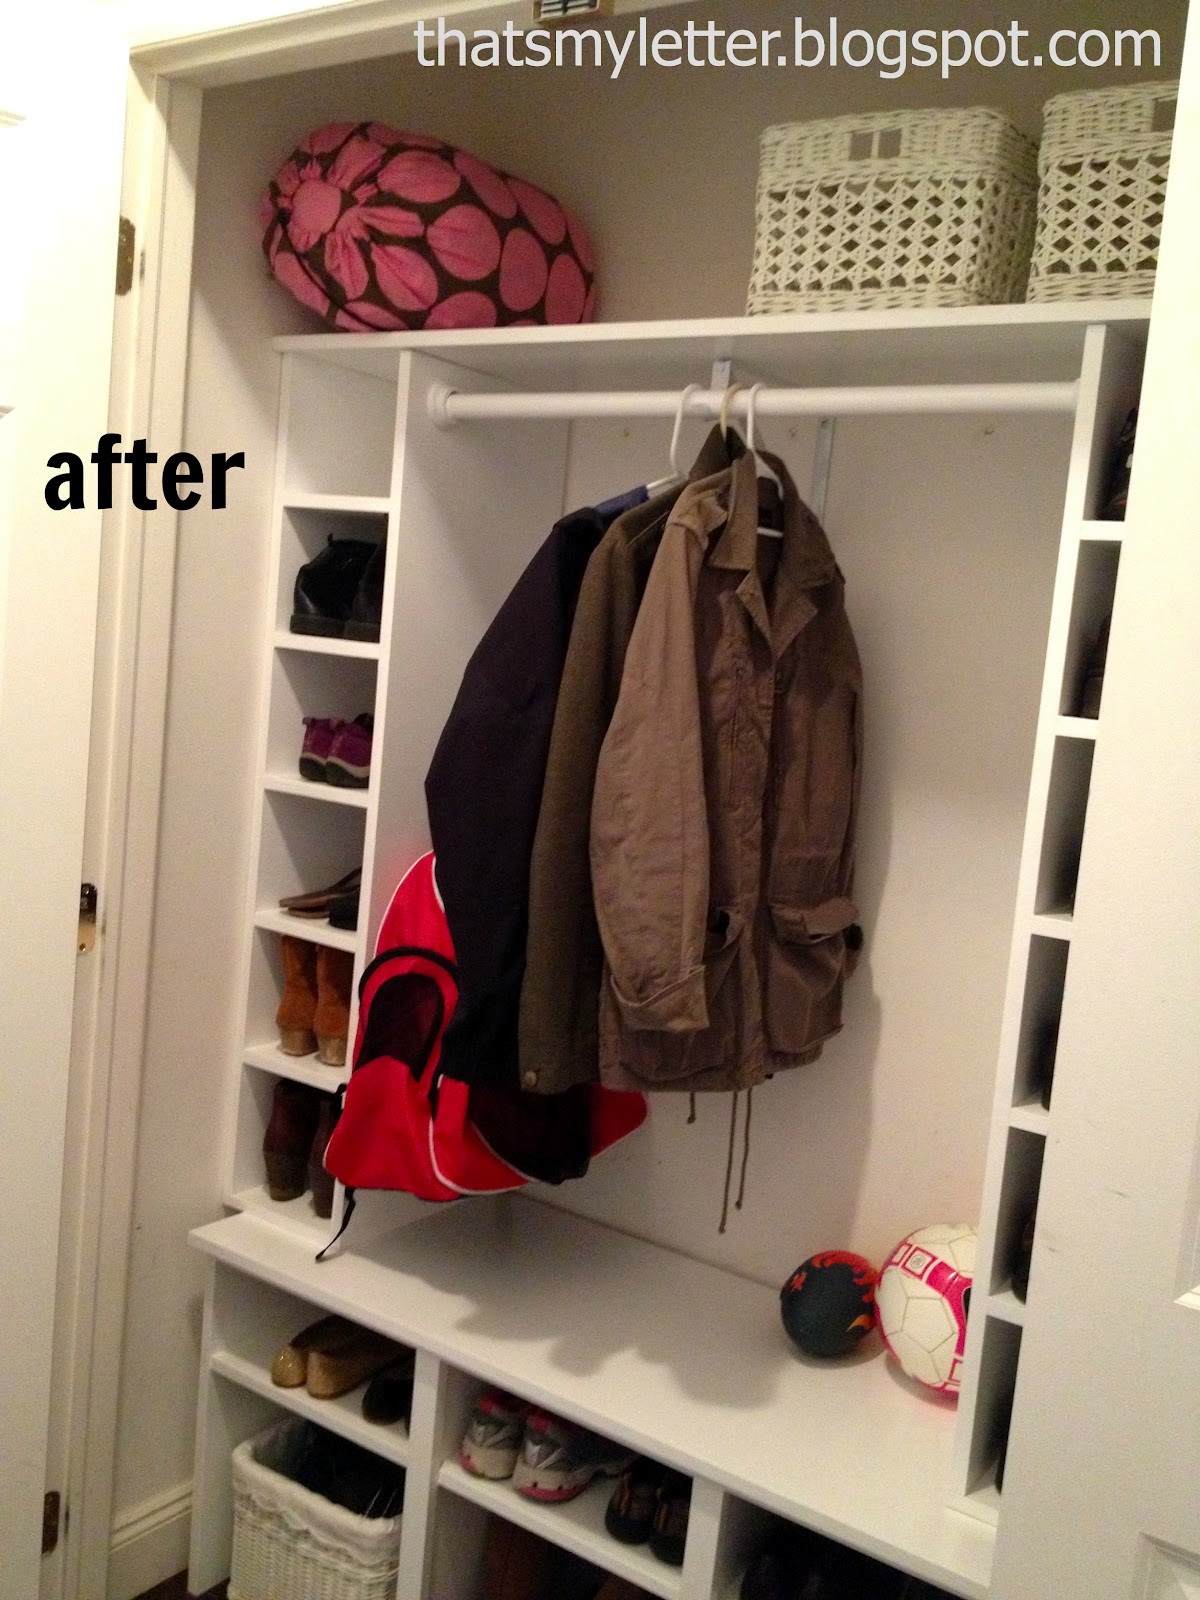 Diy Mudroom Closet Before Diy Mudroom Closet After